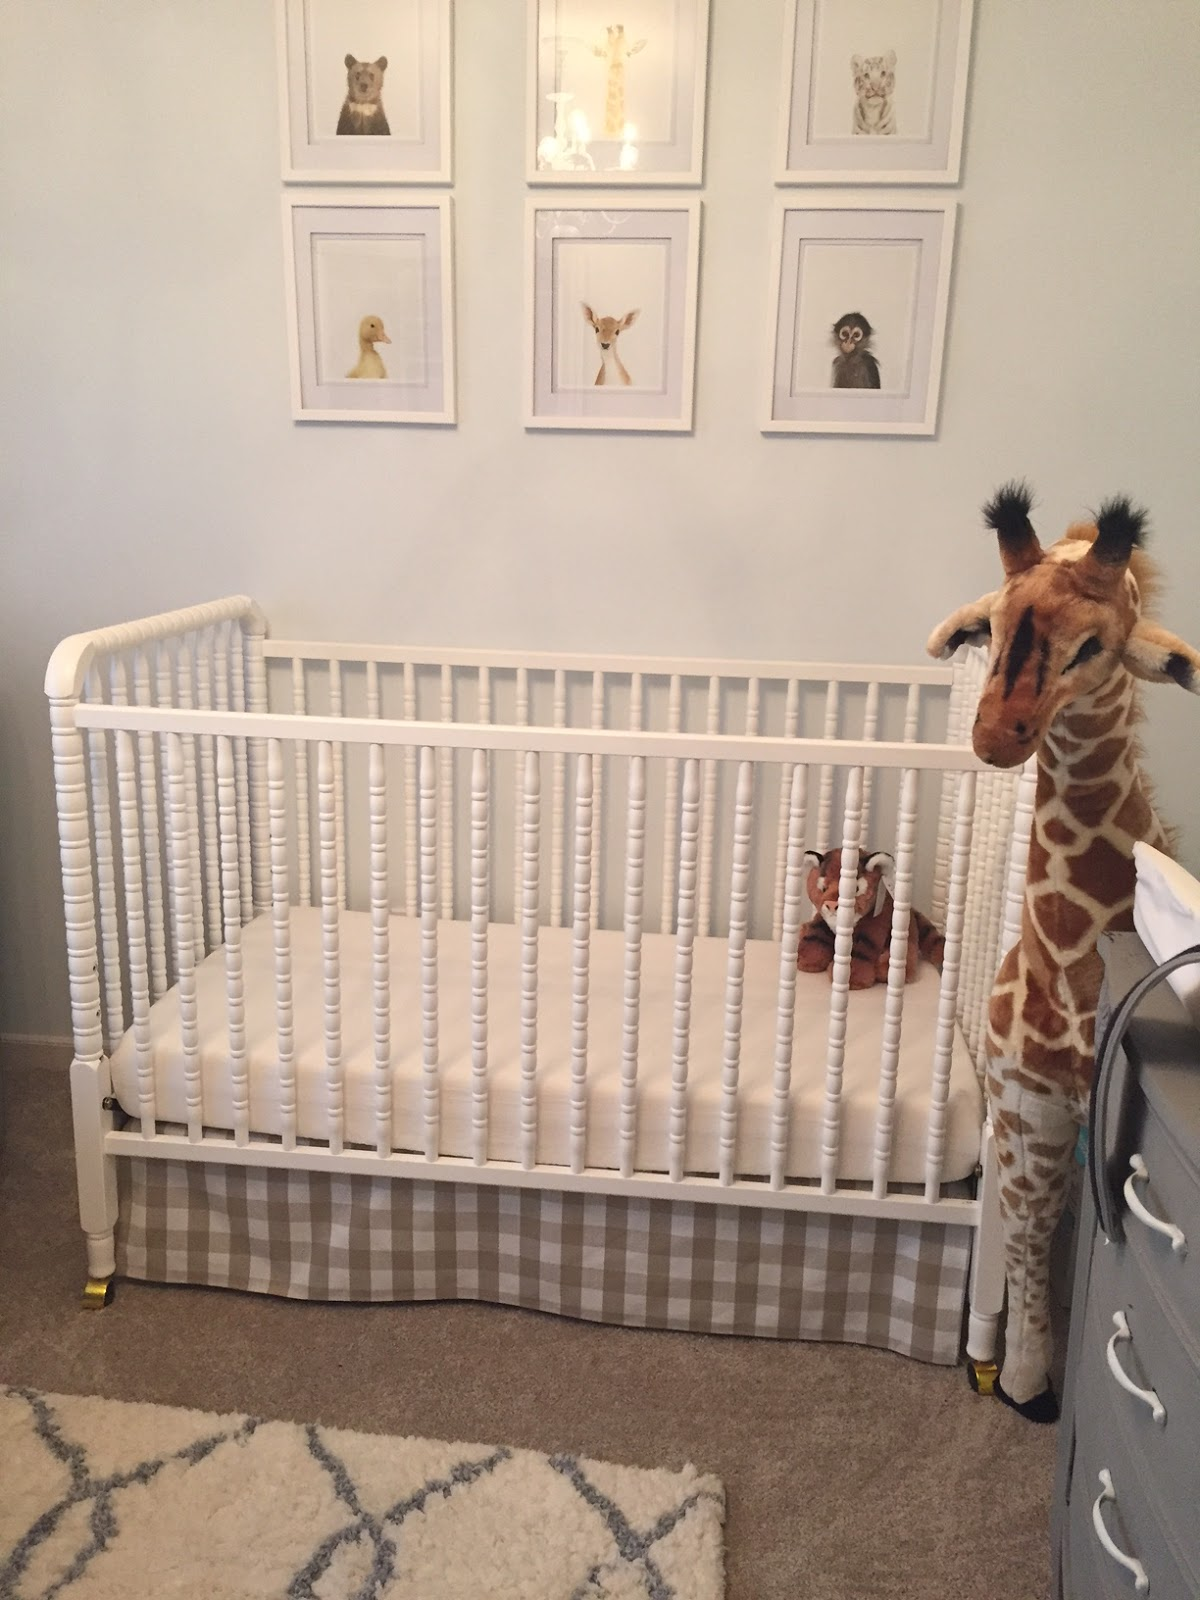 Best crib for tall baby - Since The Room Is So Small I Really Struggled With Finding A Bookshelf To Work In The Space The Crib Glider And Dresser Changing Table Take Up Almost